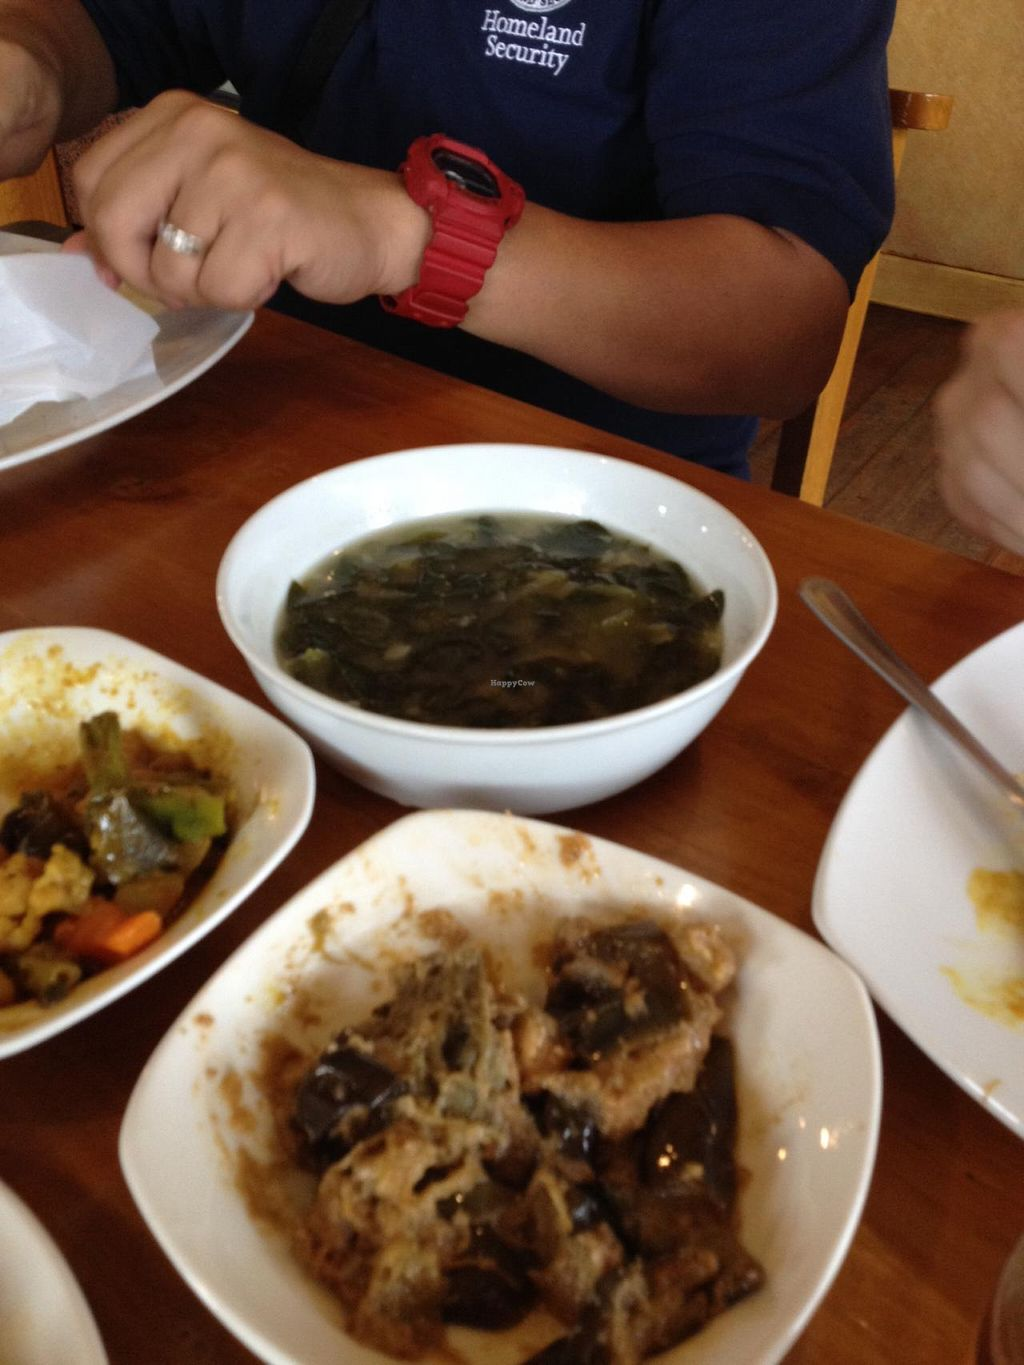 """Photo of Blissful Belly Vegetarian Cuisine  by <a href=""""/members/profile/slo0go"""">slo0go</a> <br/>Malunggay soup and awesome tofu/eggplant dish <br/> January 19, 2015  - <a href='/contact/abuse/image/3504/90699'>Report</a>"""